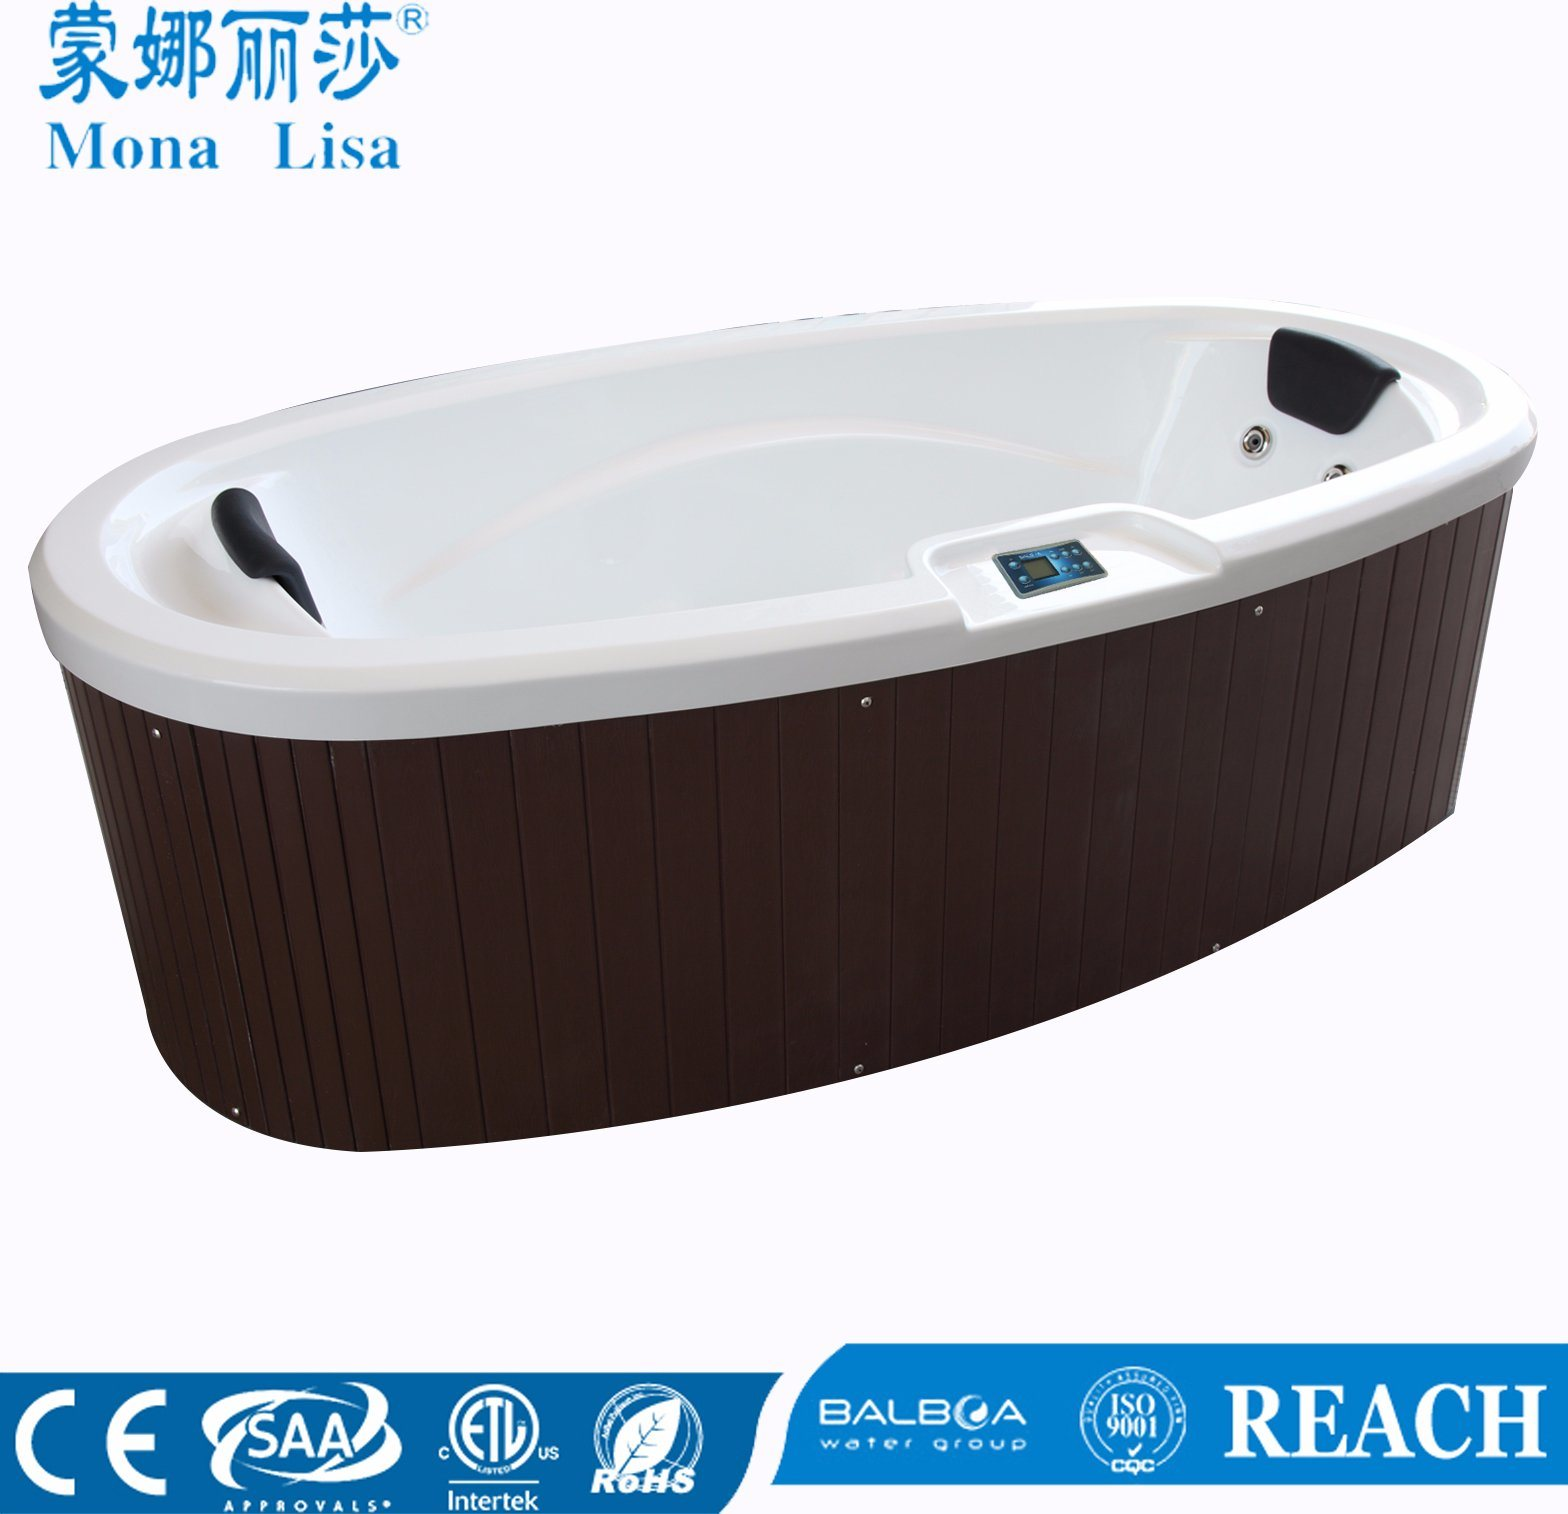 post stainless steel spa pinterest person tubs related inflatable aquarest spas n ar hot unique oval play of two plug jets small tub new